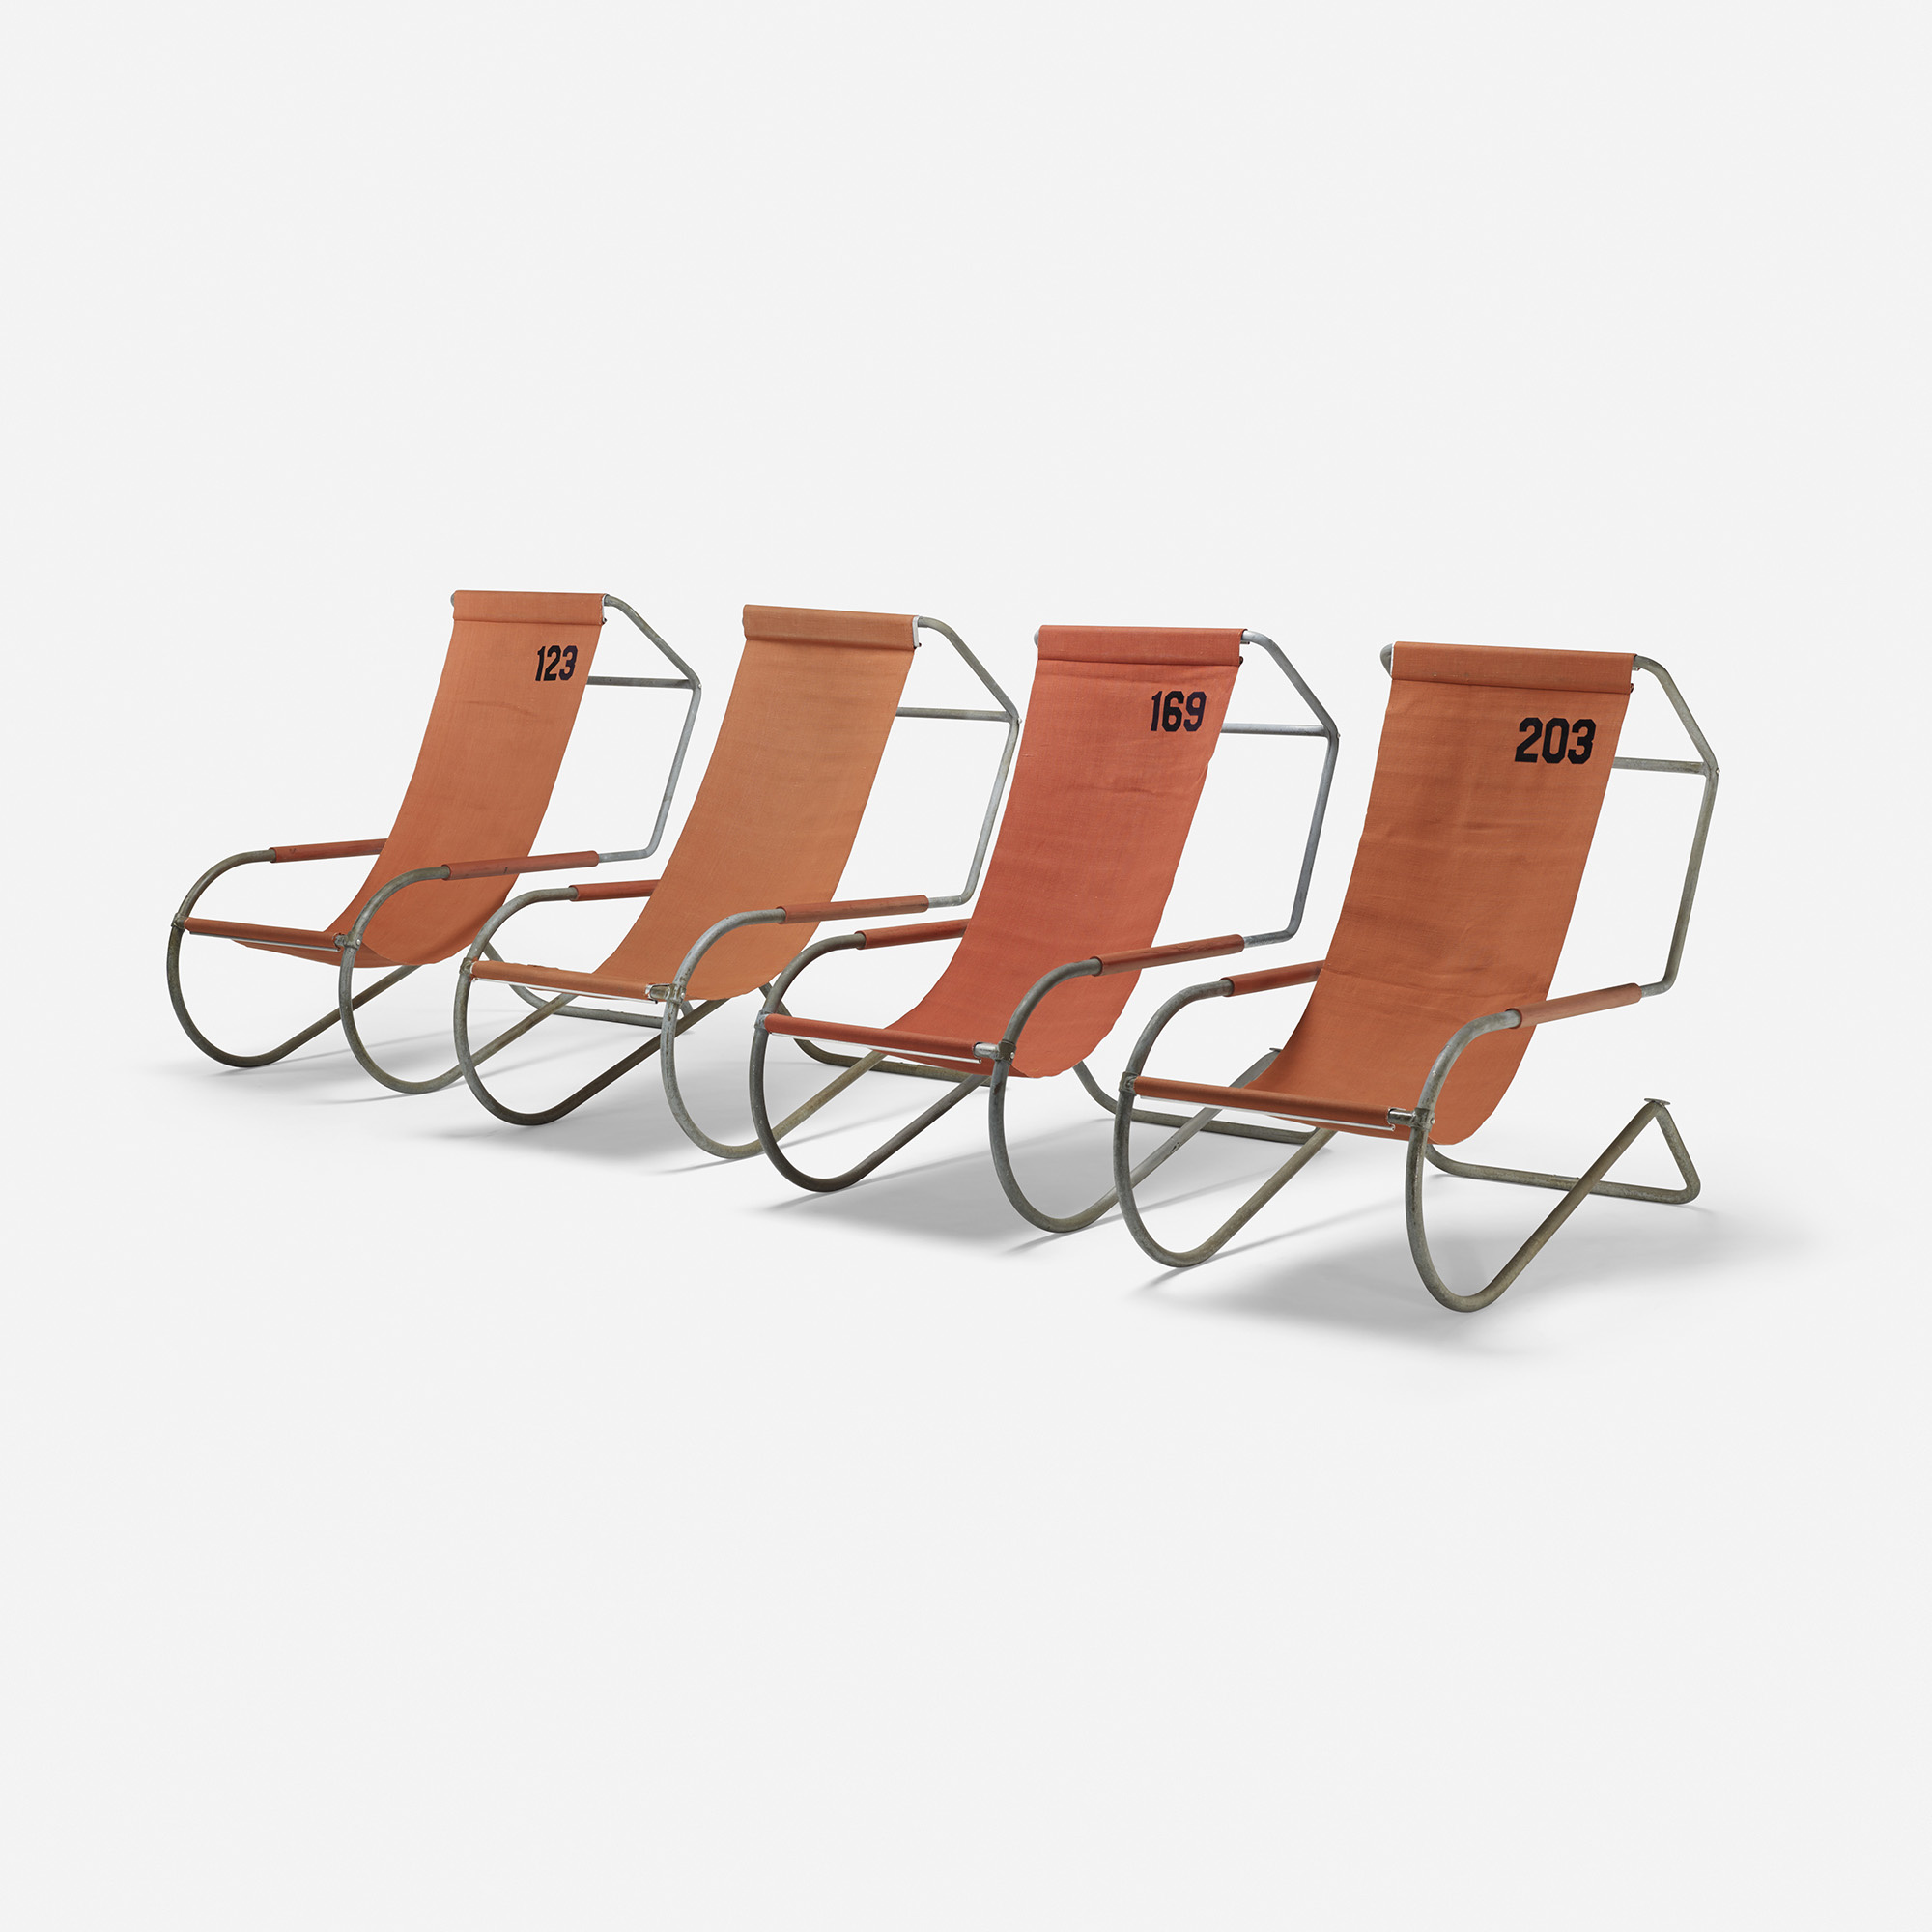 223 battista and gino giudici set of four deck chairs from lido